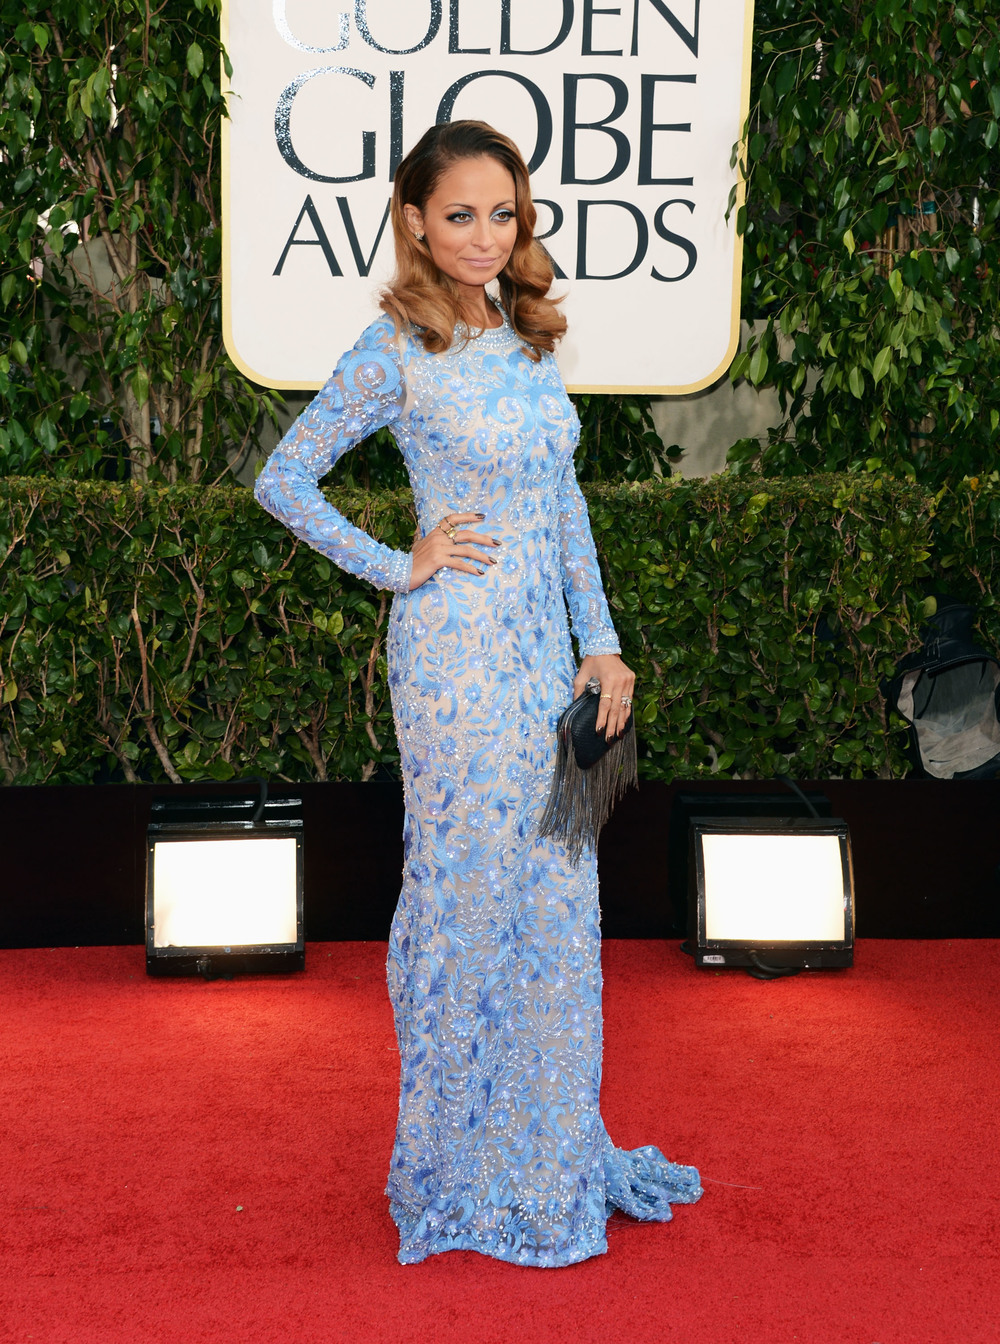 Nicole Richie at the 2013 Golden Globes Awards Red Carpet 2